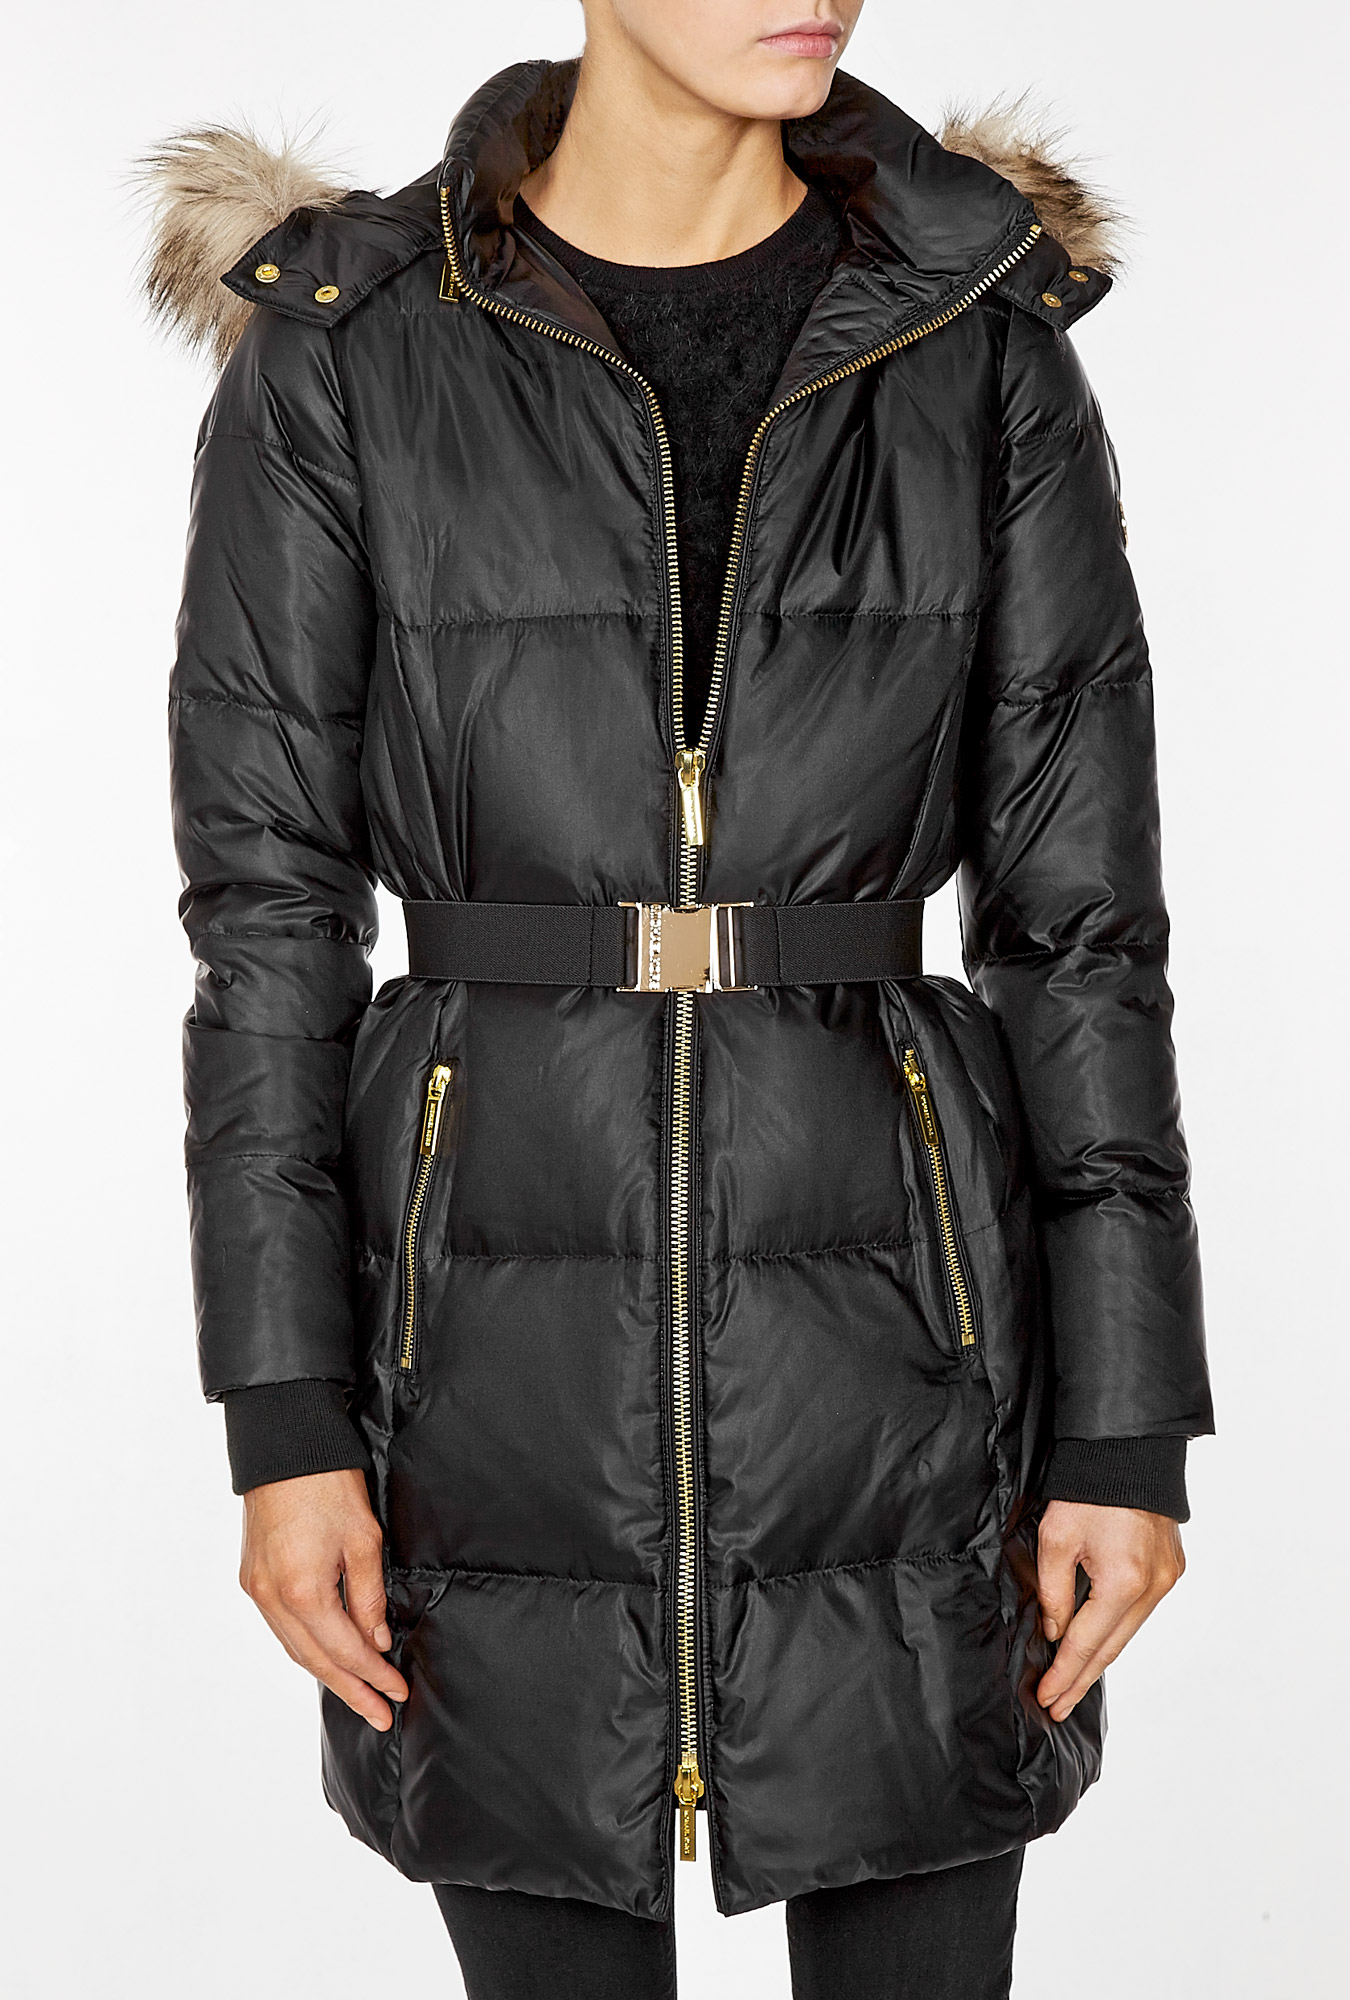 michael michael kors faux fur trim hooded down jacket in black lyst. Black Bedroom Furniture Sets. Home Design Ideas